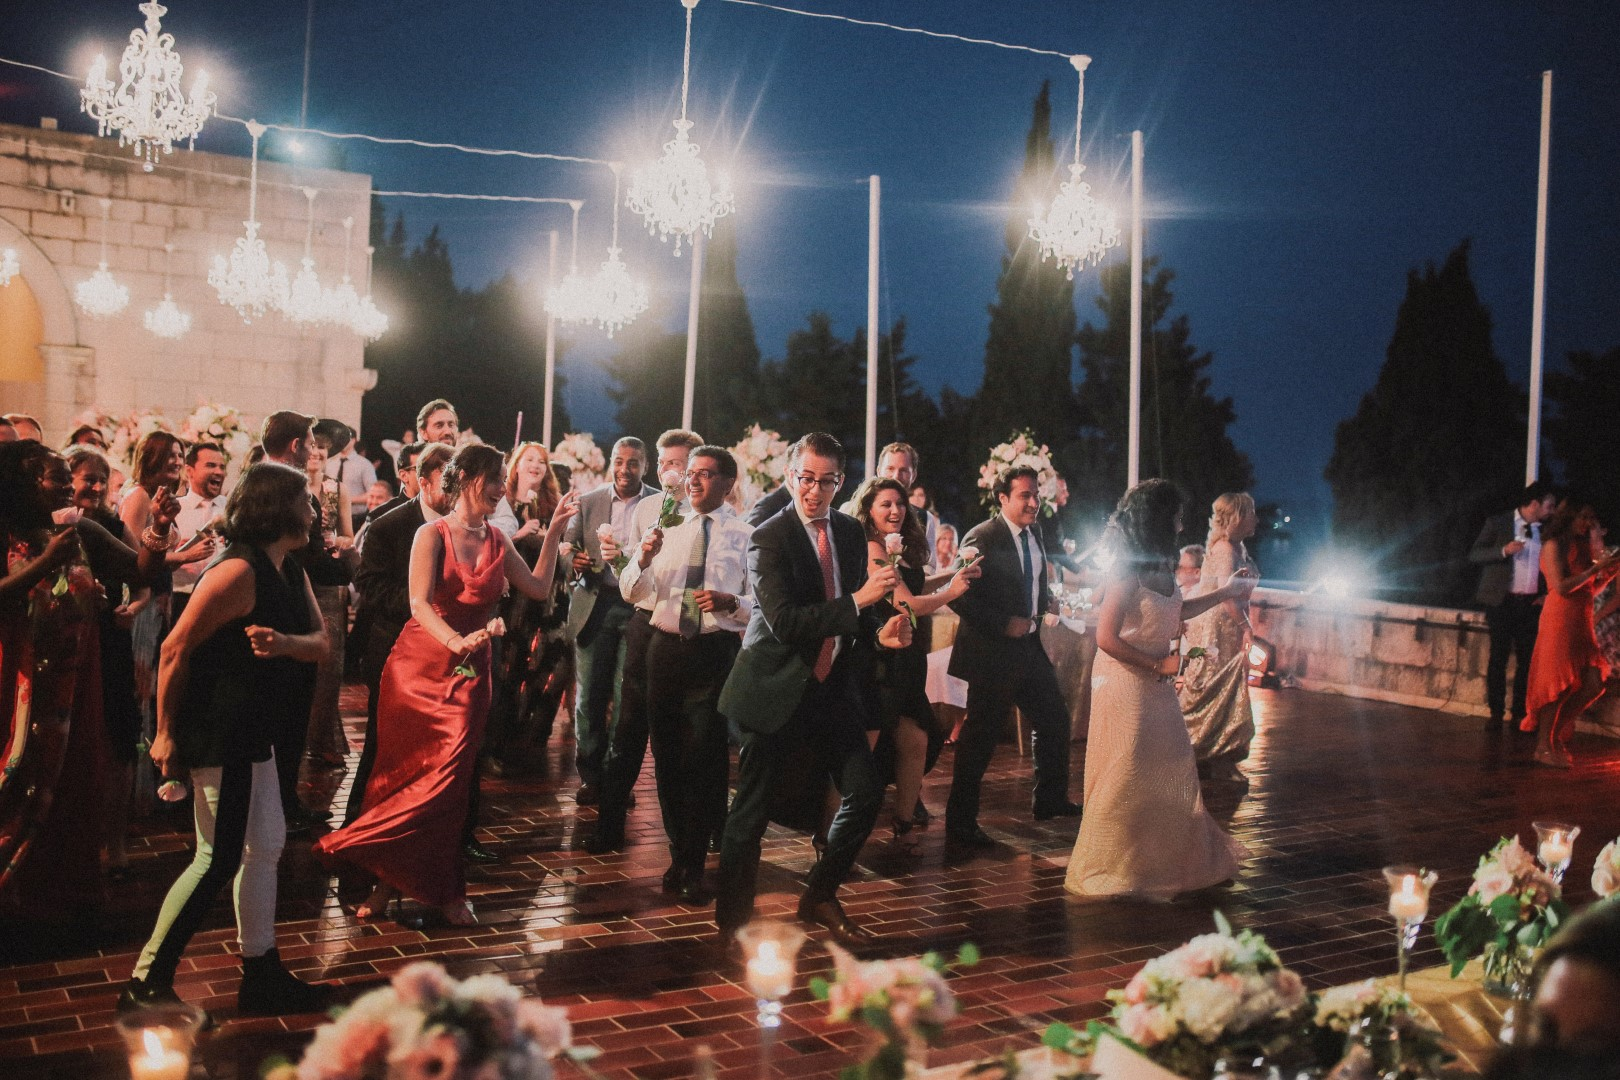 This photo is showing the wedding guests dancing at the art gallery in Dubrovnik. It looks like it's a choreography and everyone is laughing.